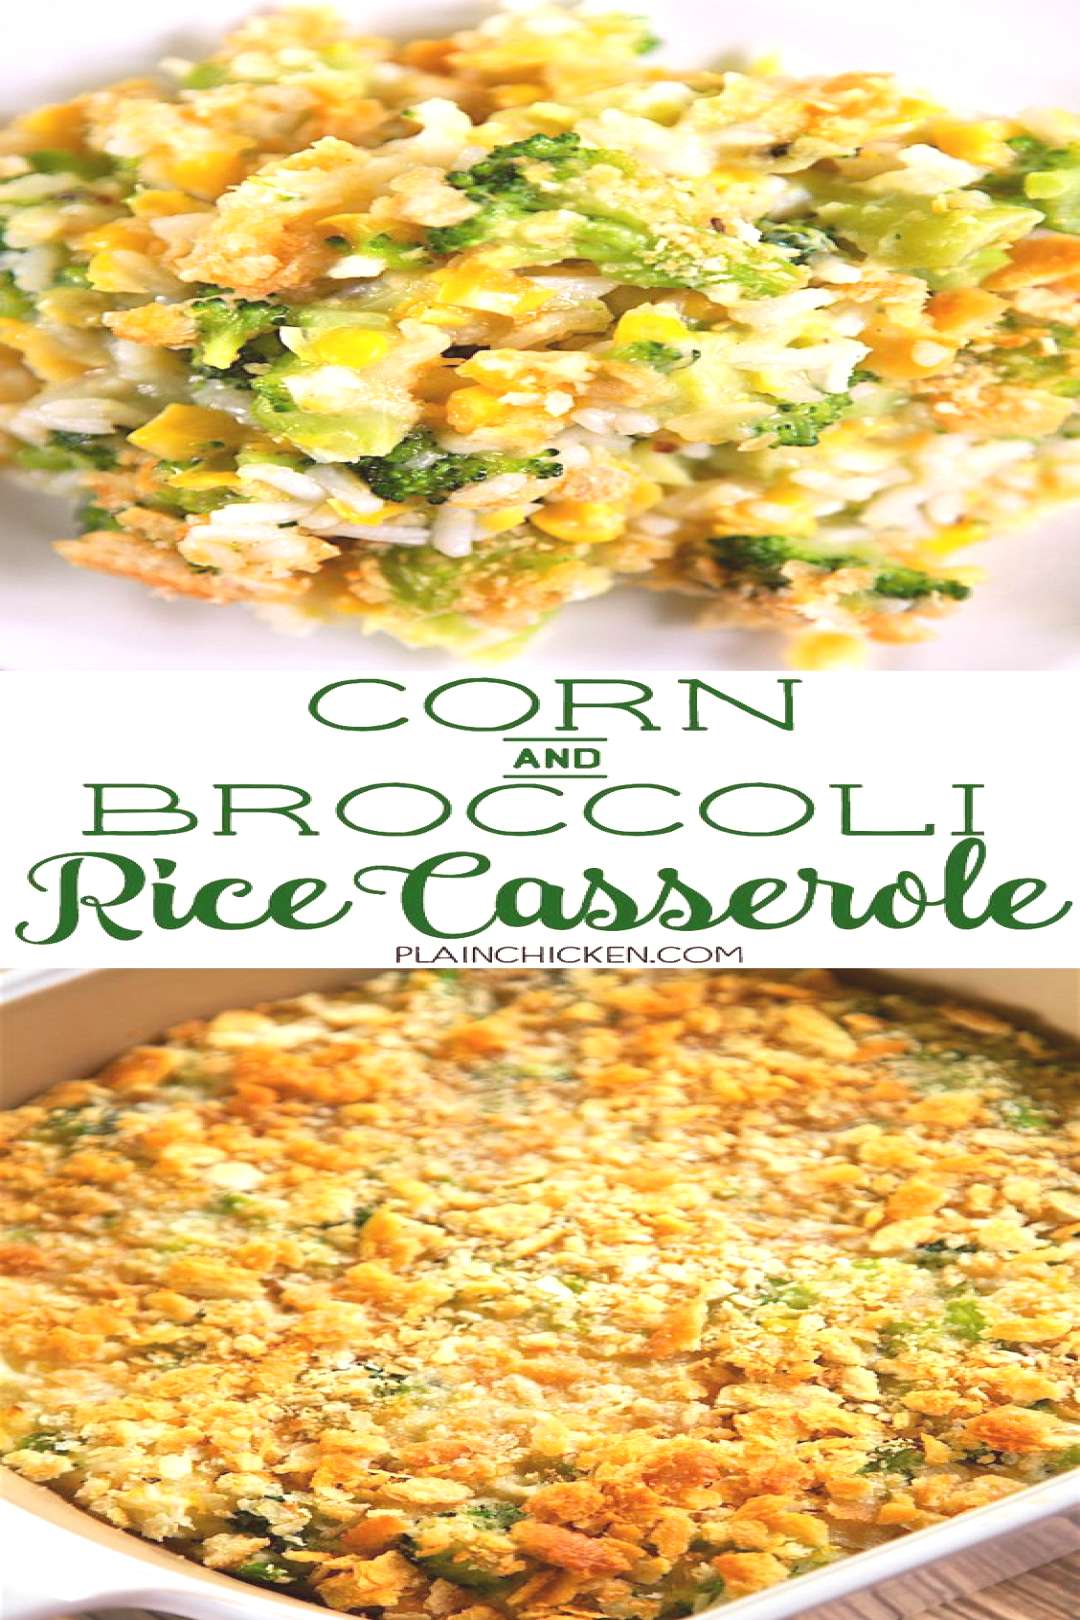 Onions, House and Rice casserole on Pinterest This House and Rice casserole on Pinterest is a best